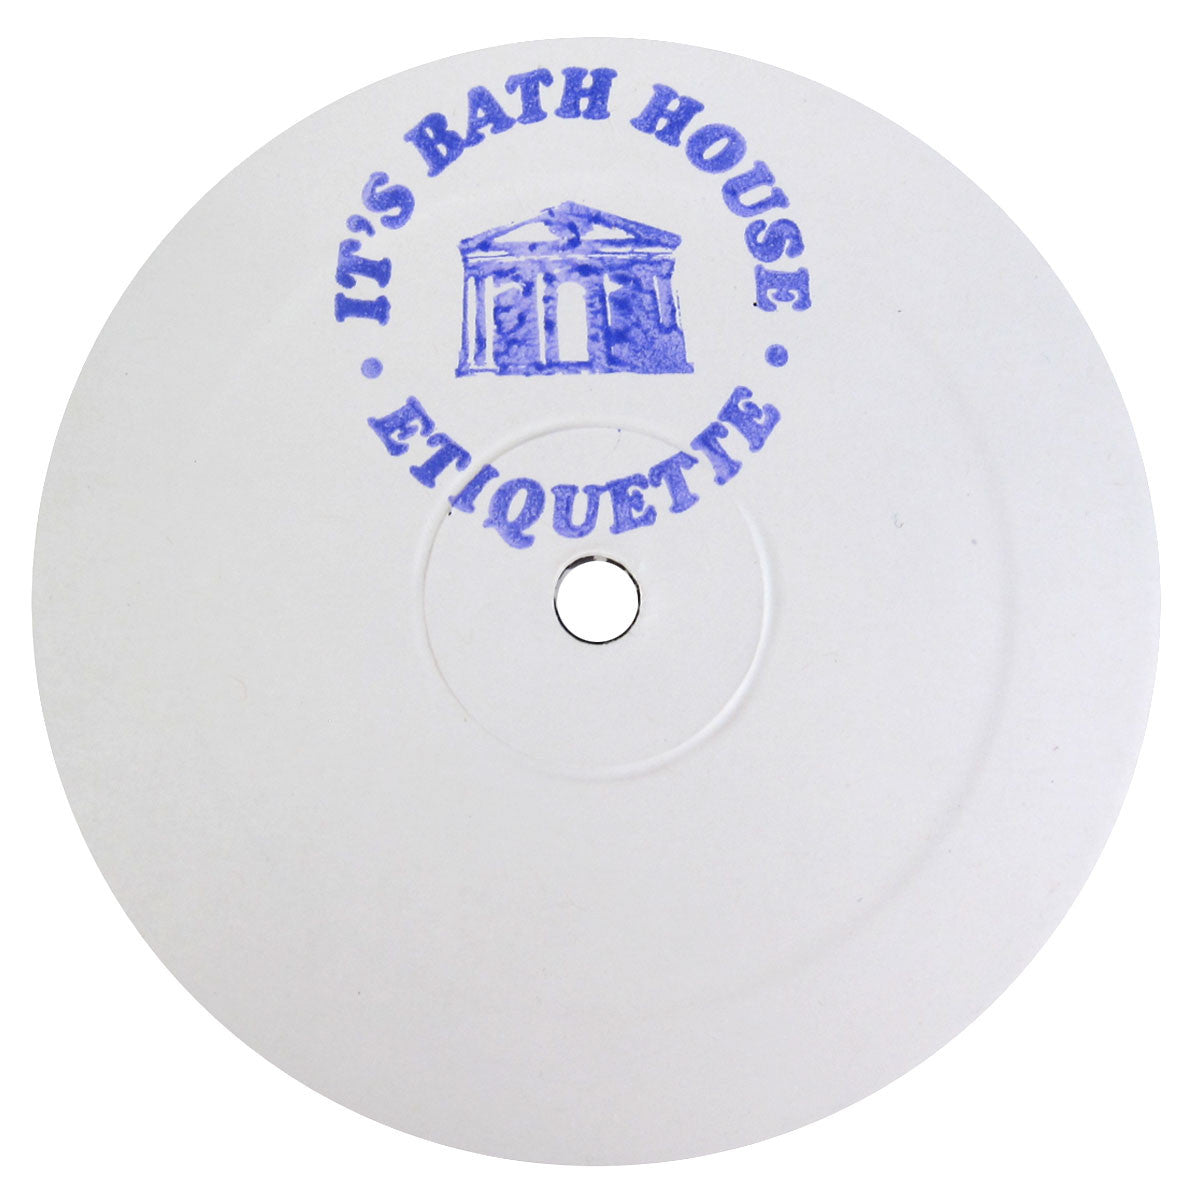 Gay Marvine: Bath House Etiquette Vol. 6 (Chic, Change, Section 25, Klymaxx) Vinyl 12""